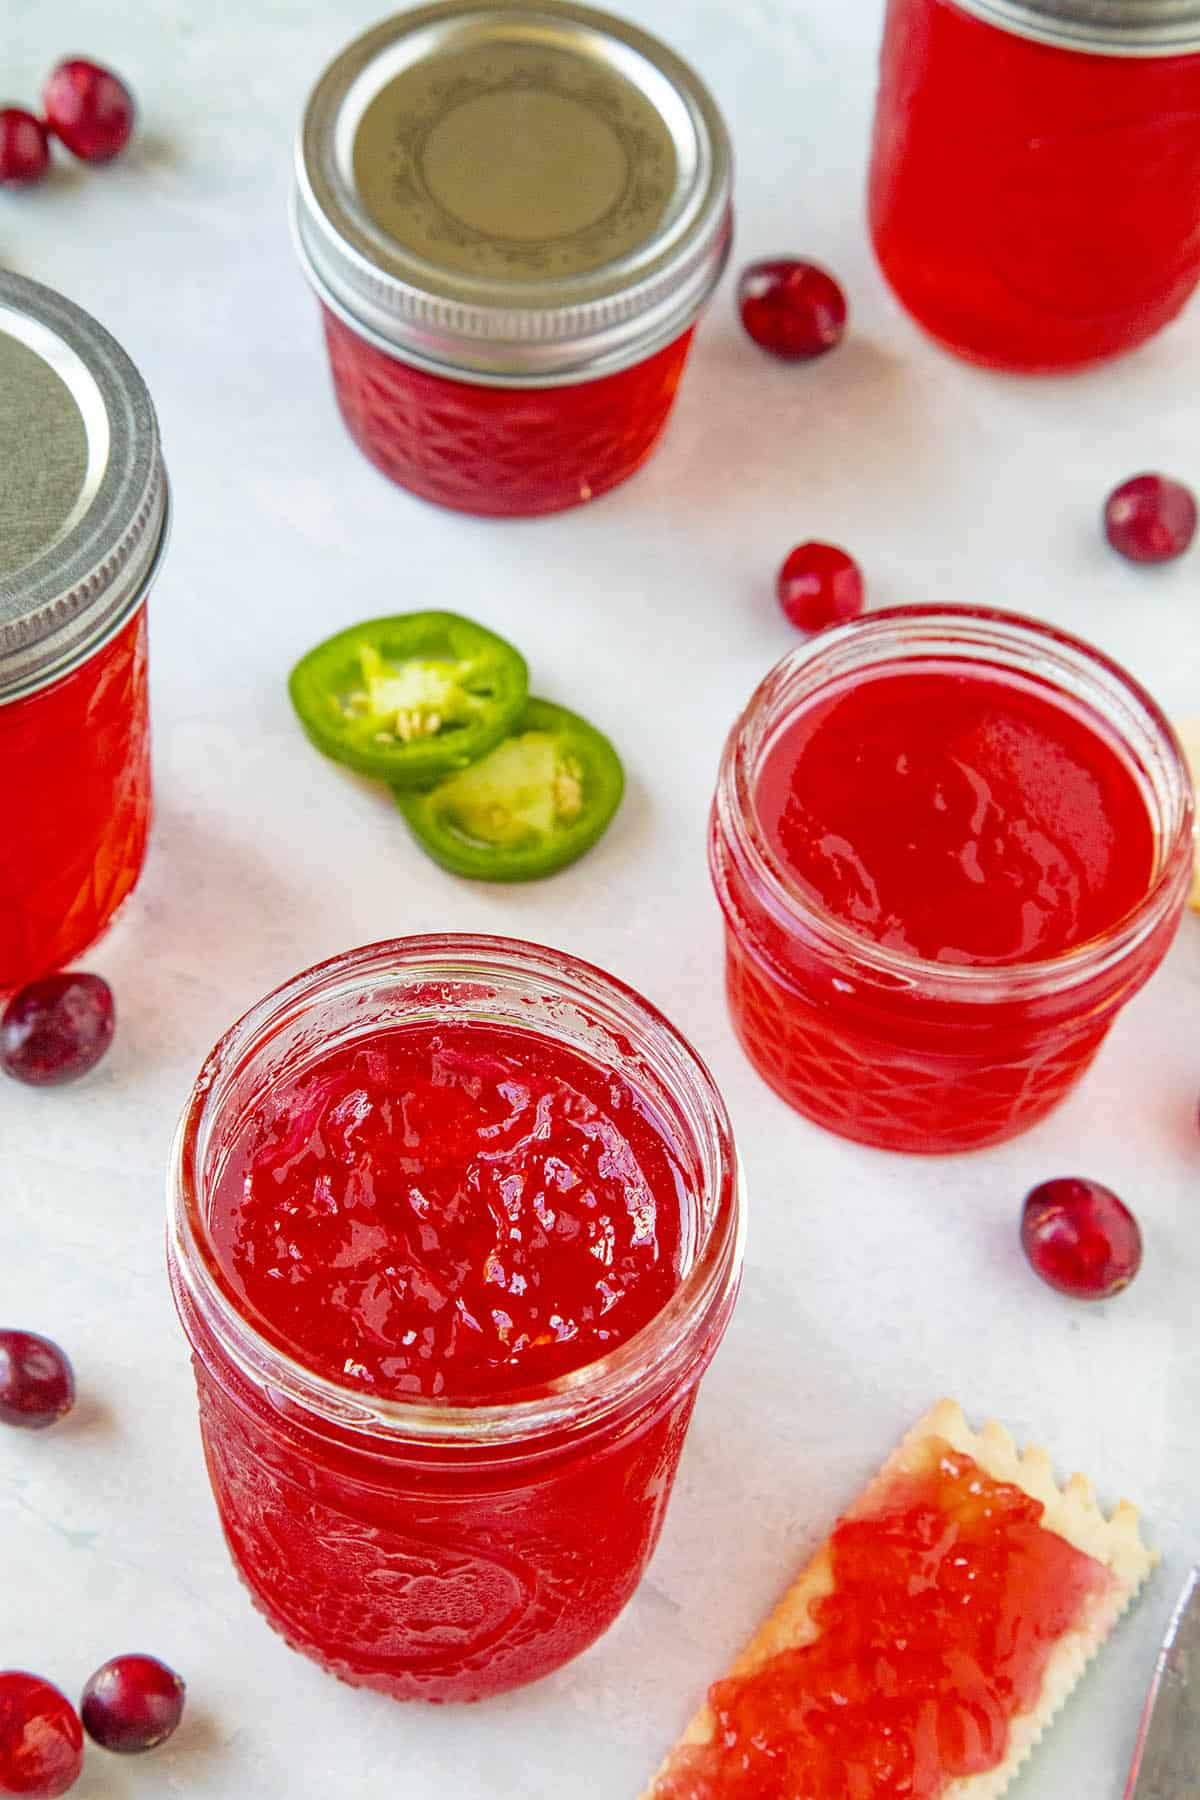 Cranberry Jalapeno Jelly, ready to serve